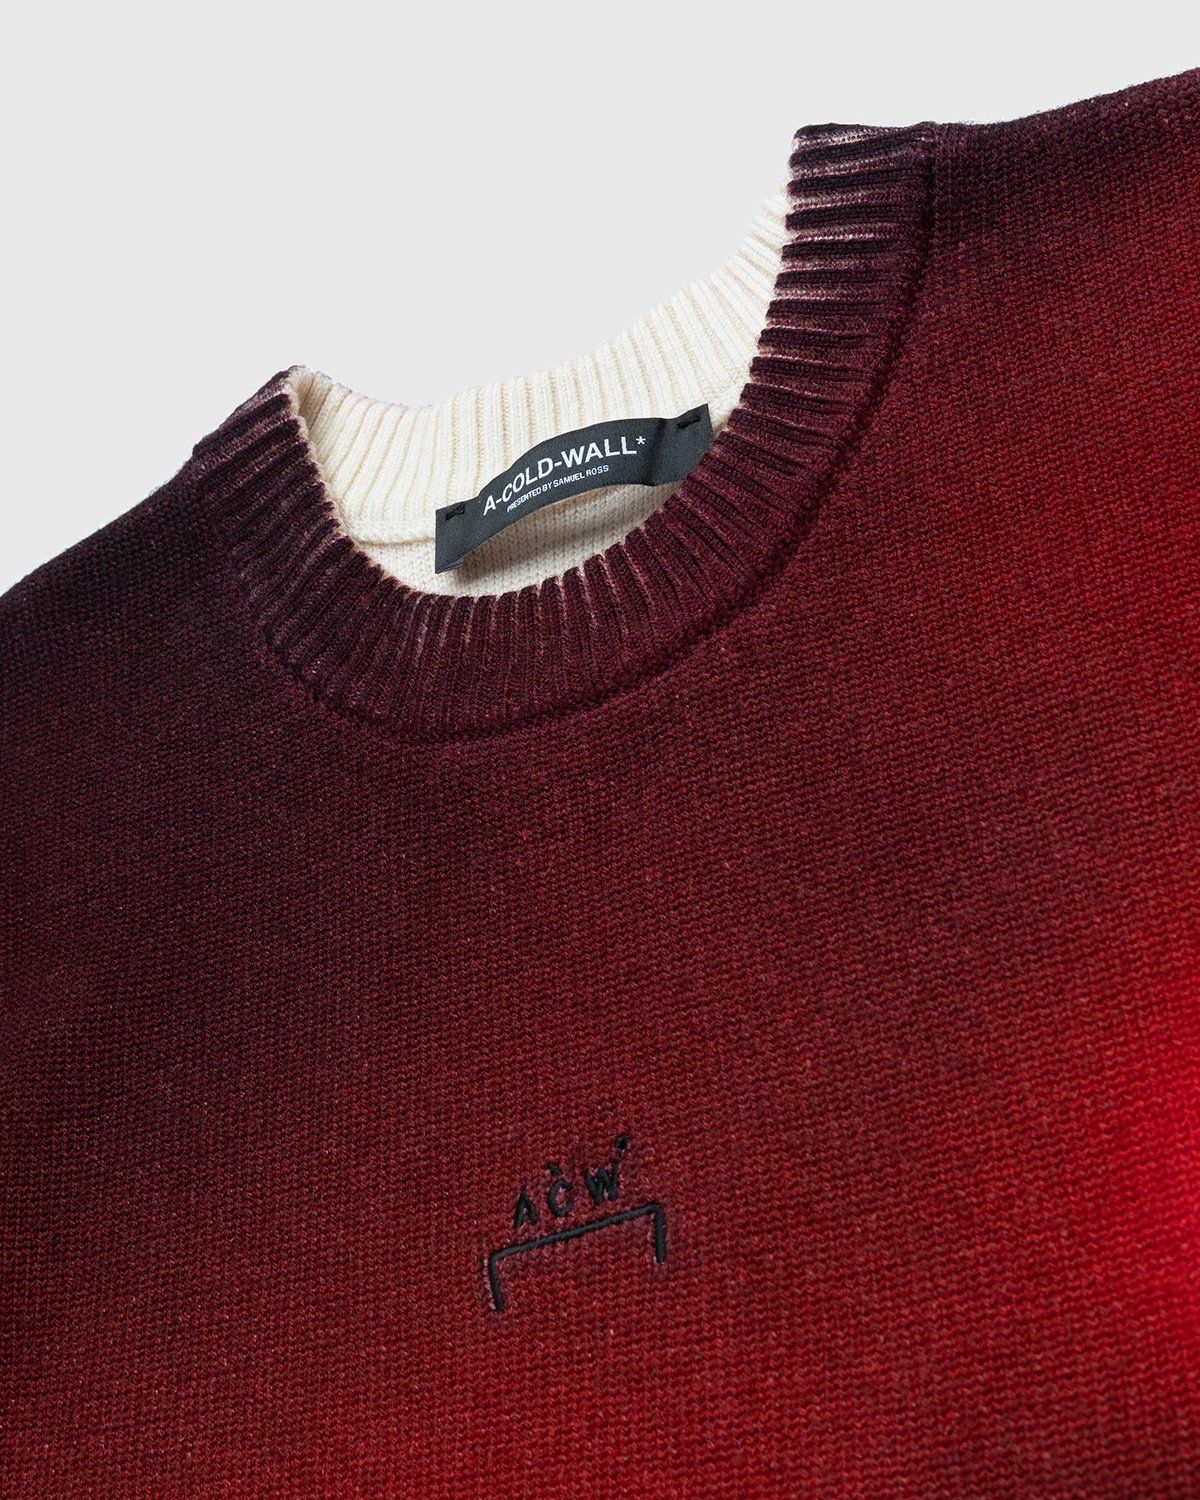 A-COLD-WALL* – Digital Print Knit Red - Image 3